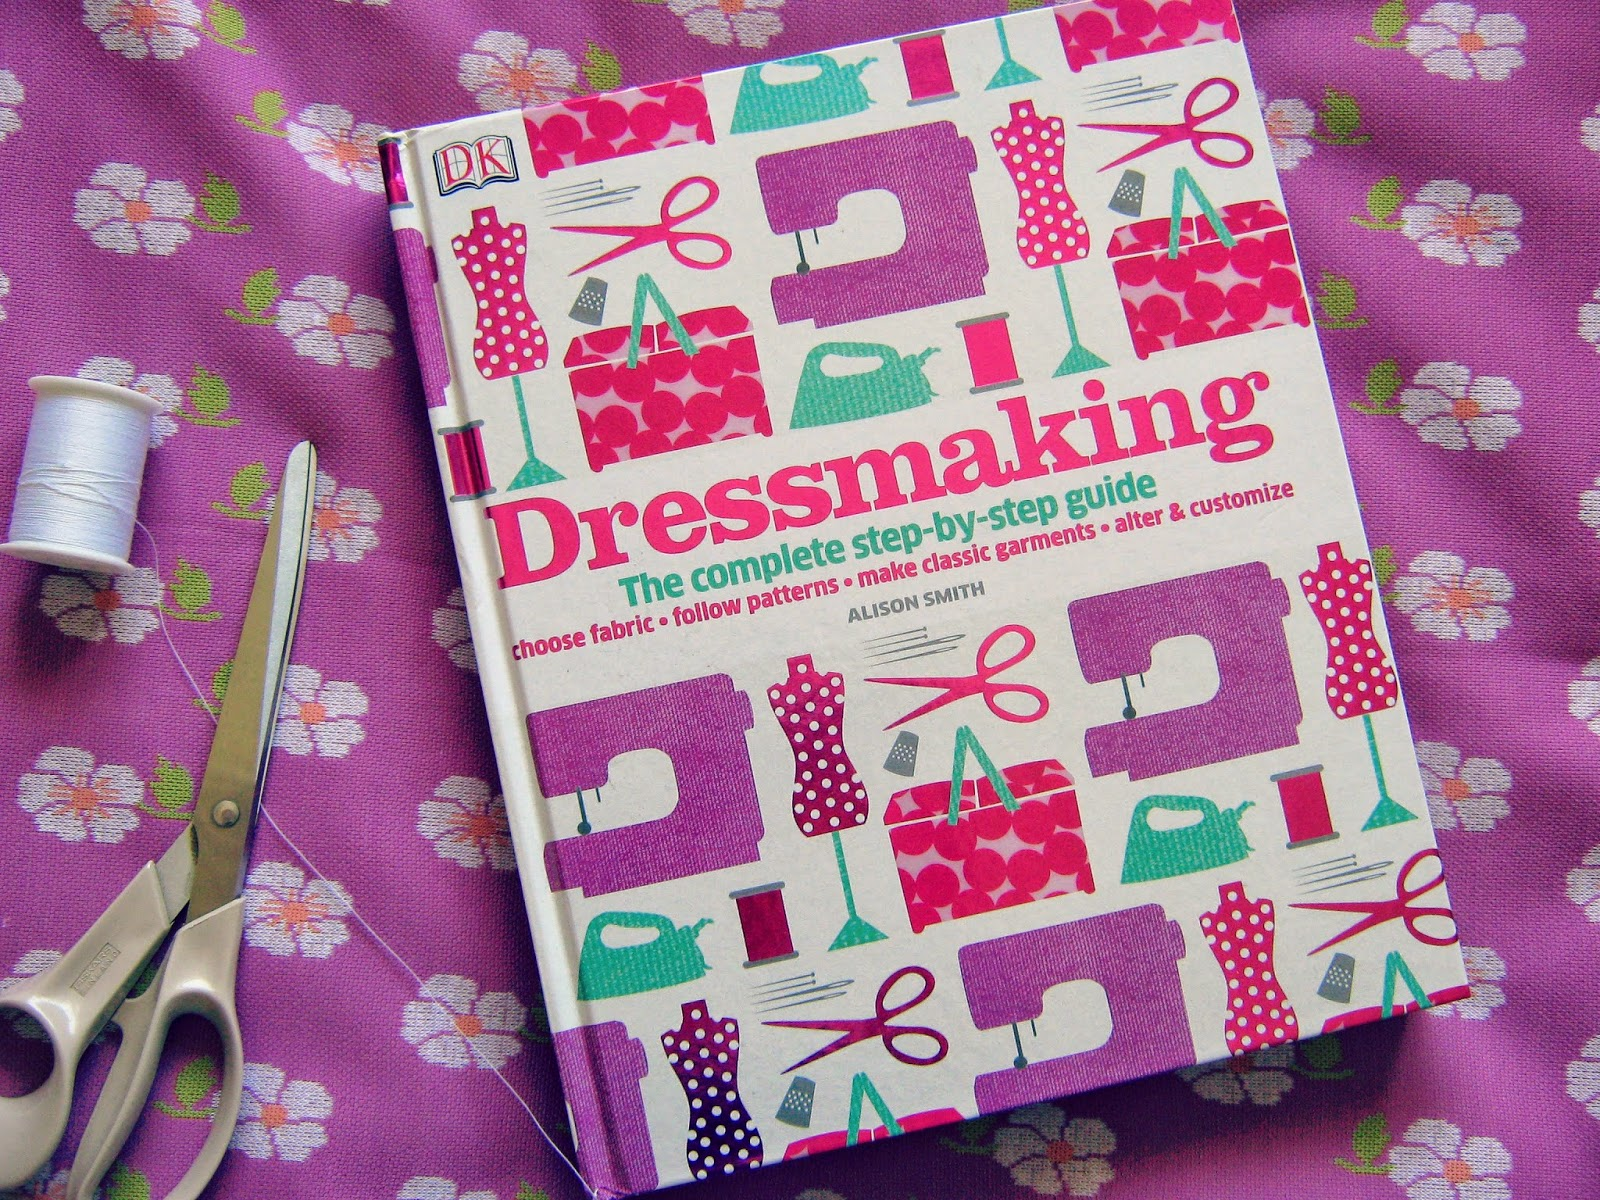 Review Dressmaking by Alison Smith